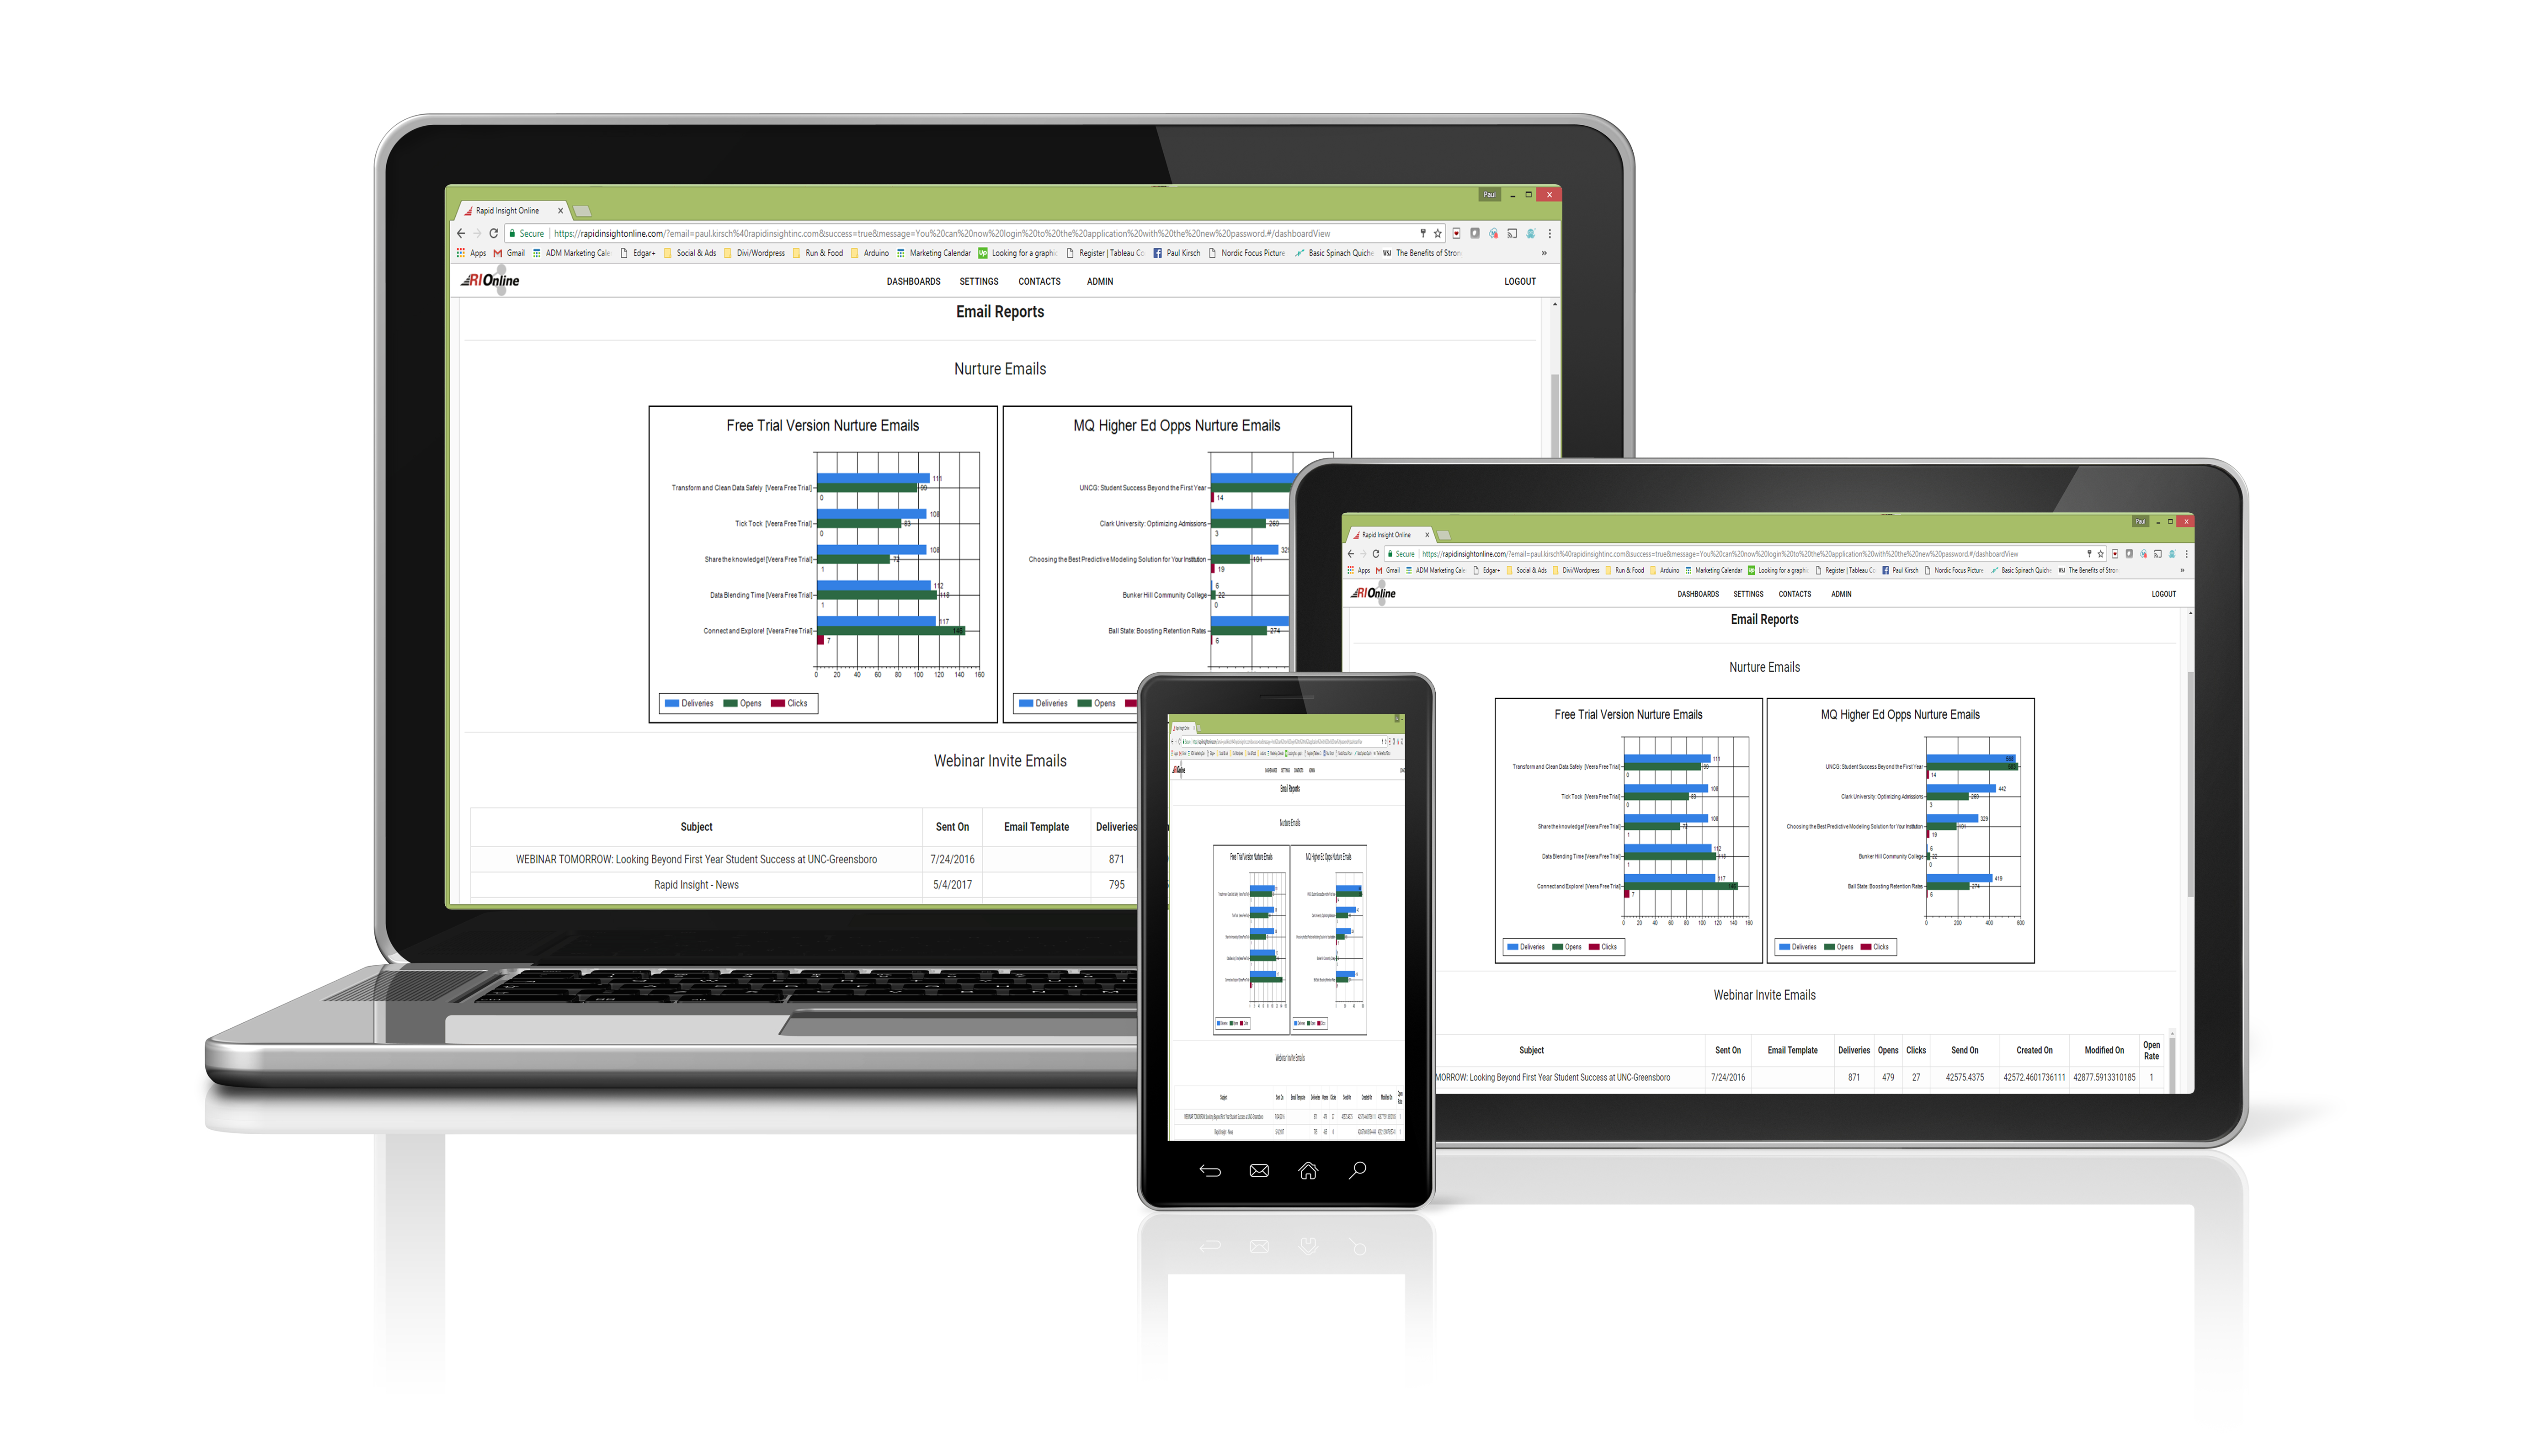 View & share reports on your phone, tablet or computer with the ability to filter and search results quickly